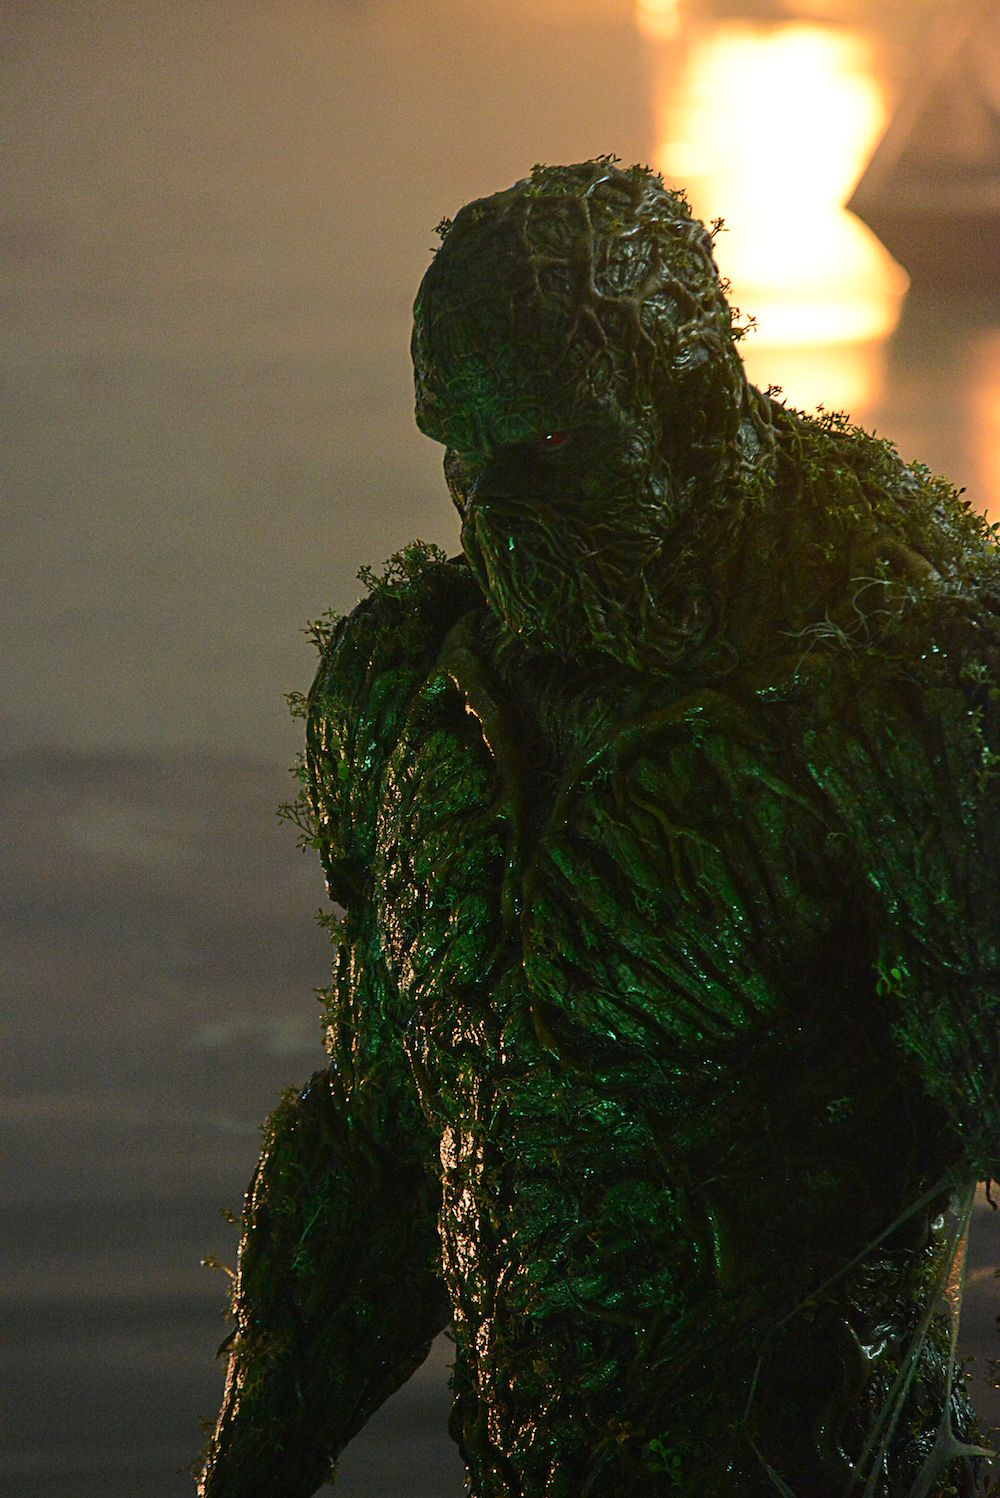 Swamp Thing Review: DC's Latest Has John Carpenter's The